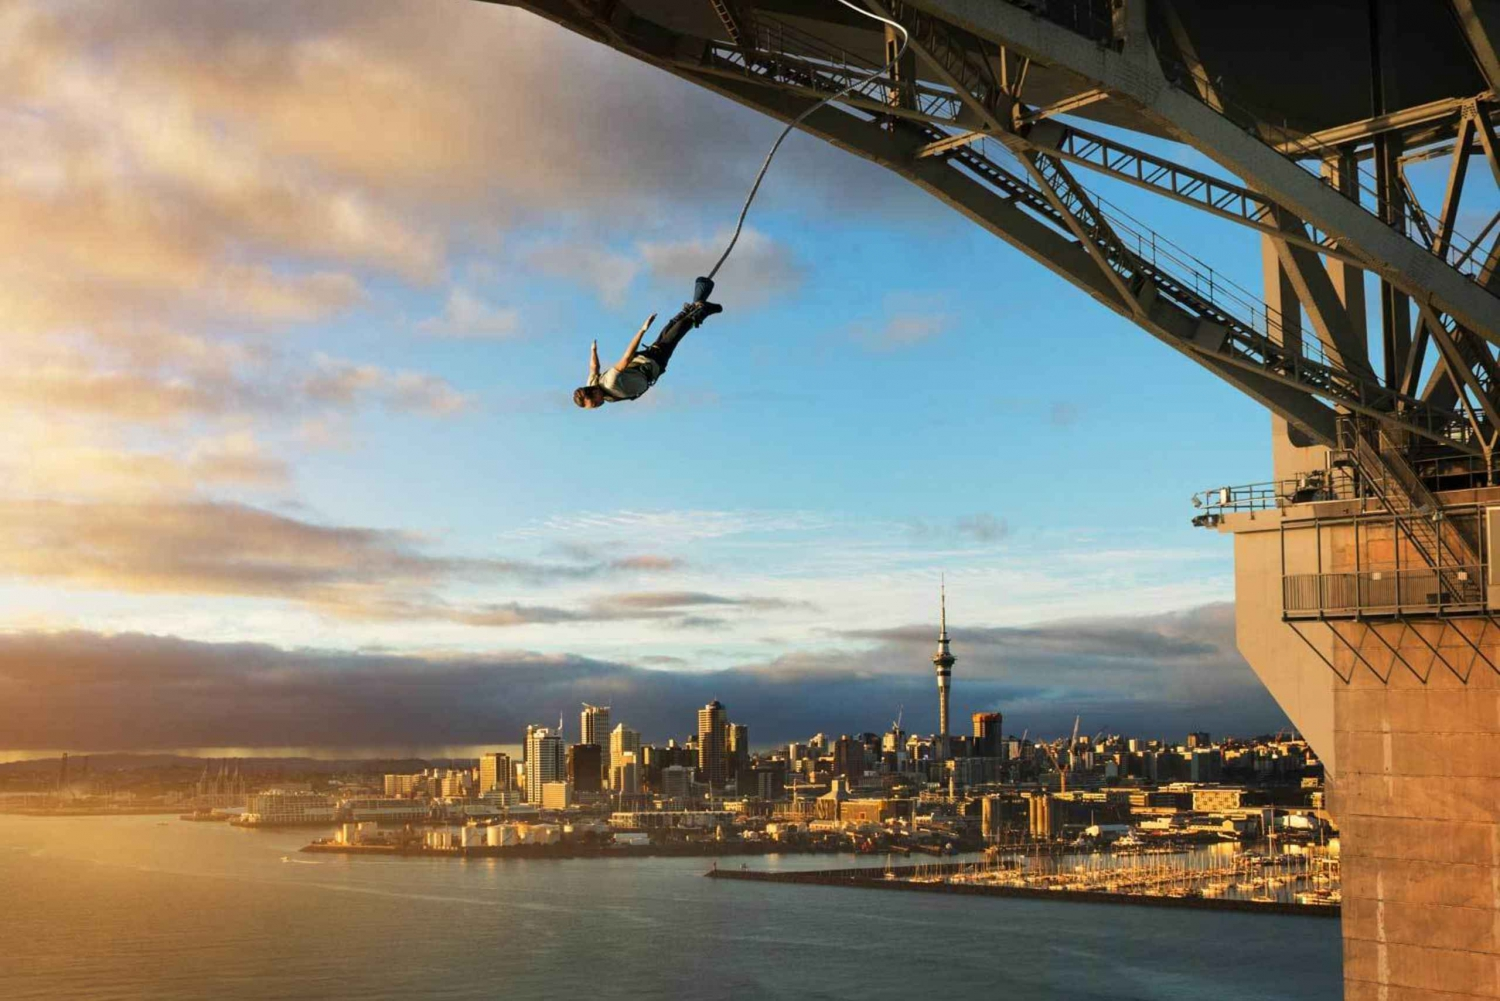 Auckland Harbour Bridge Bungee Jump